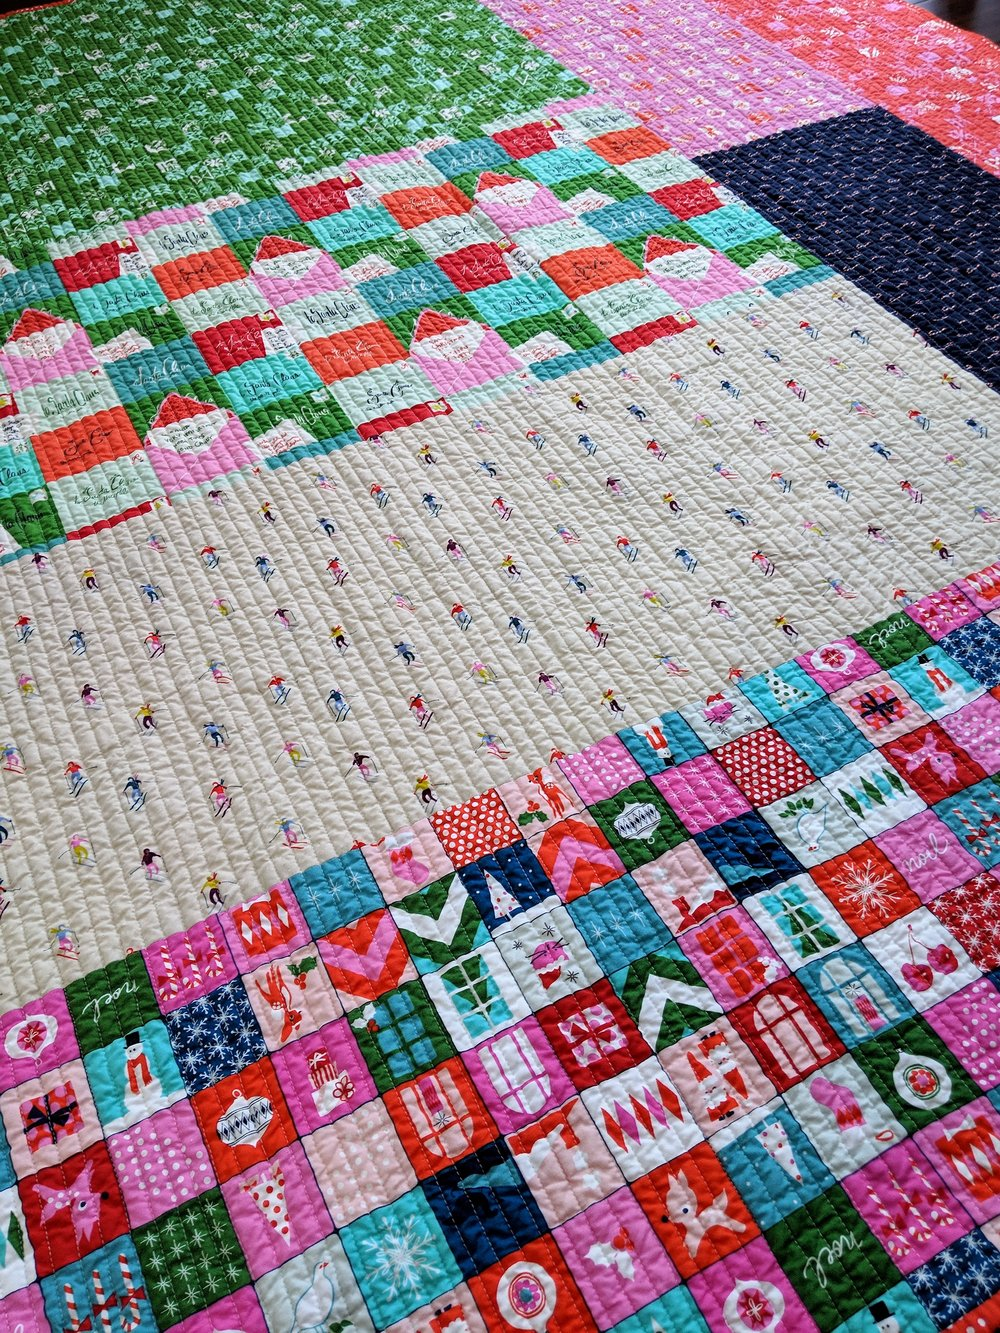 … and one of the pieced back